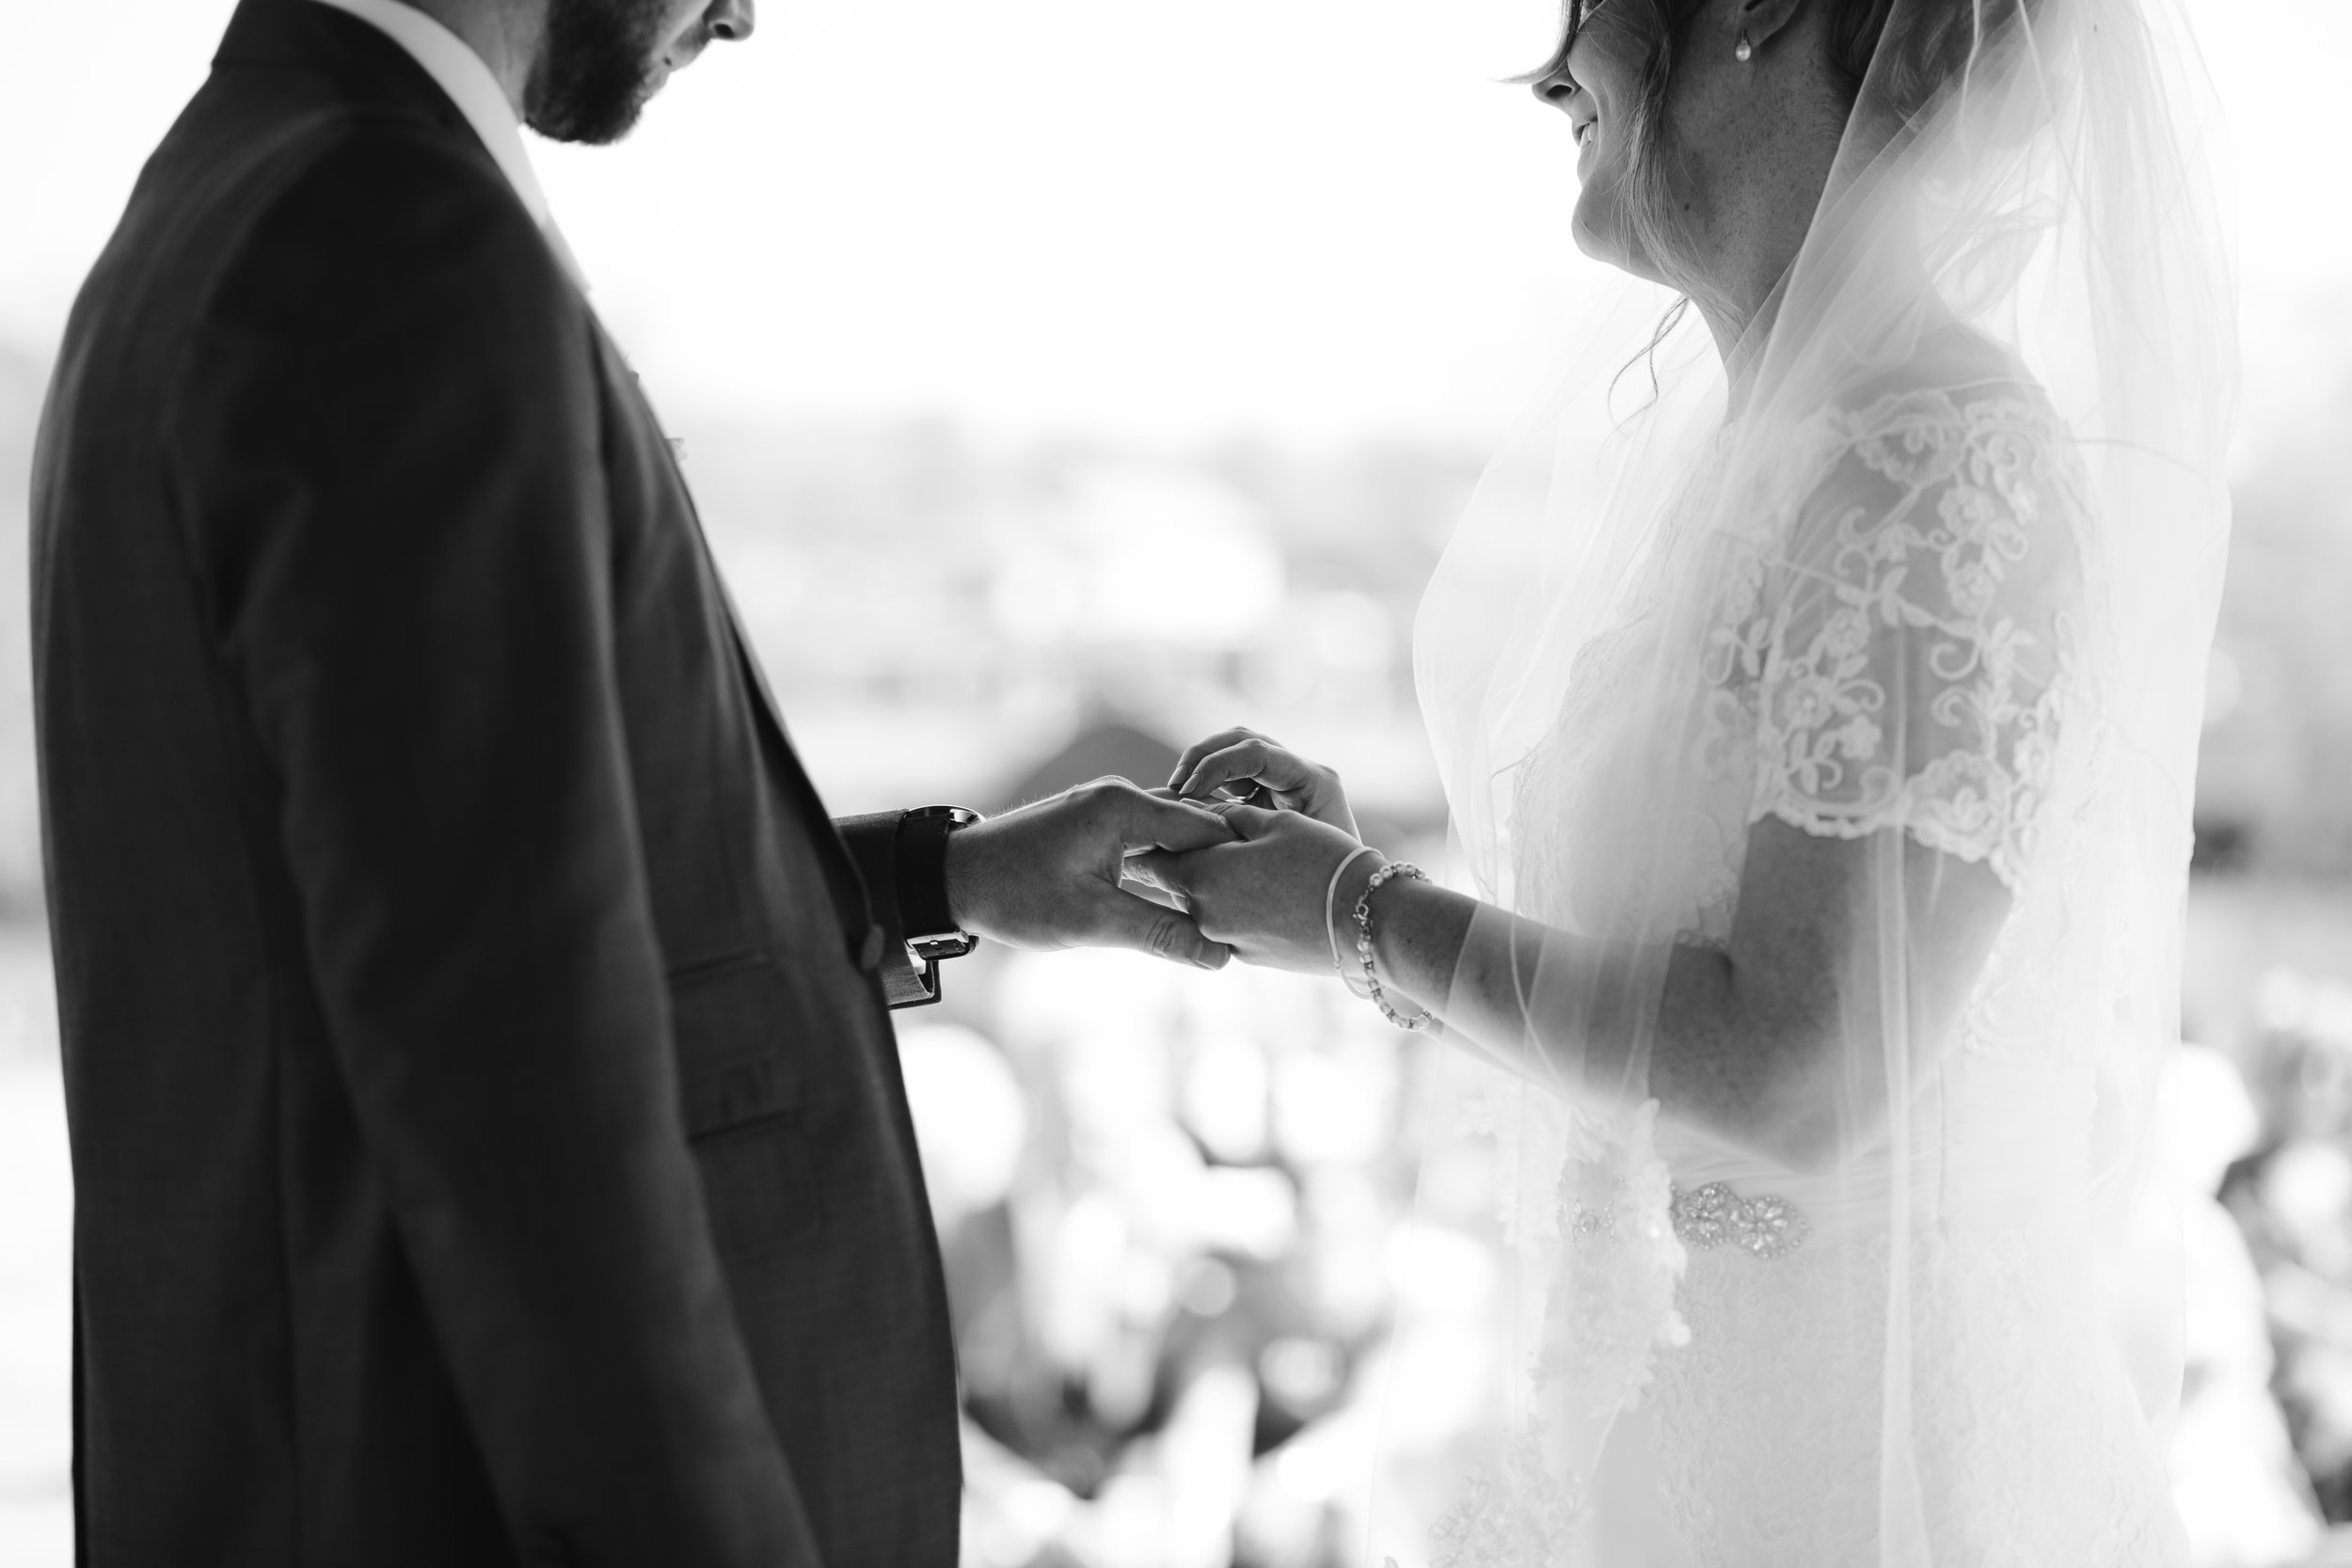 black and white detailed photo of the bride and groom exchanging rings